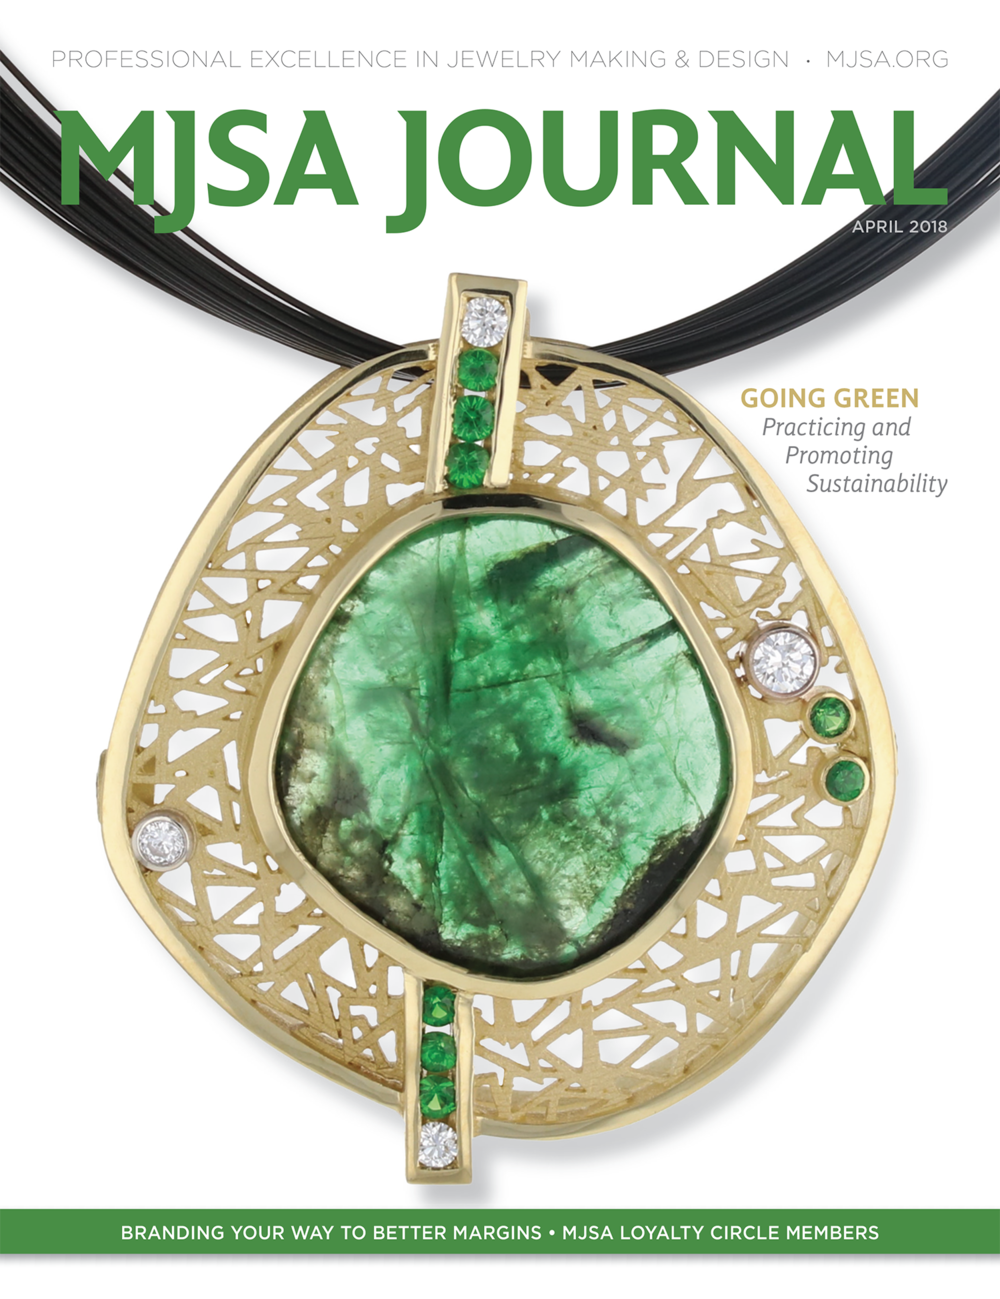 MJSAJournal_Apr'18 Cover.png